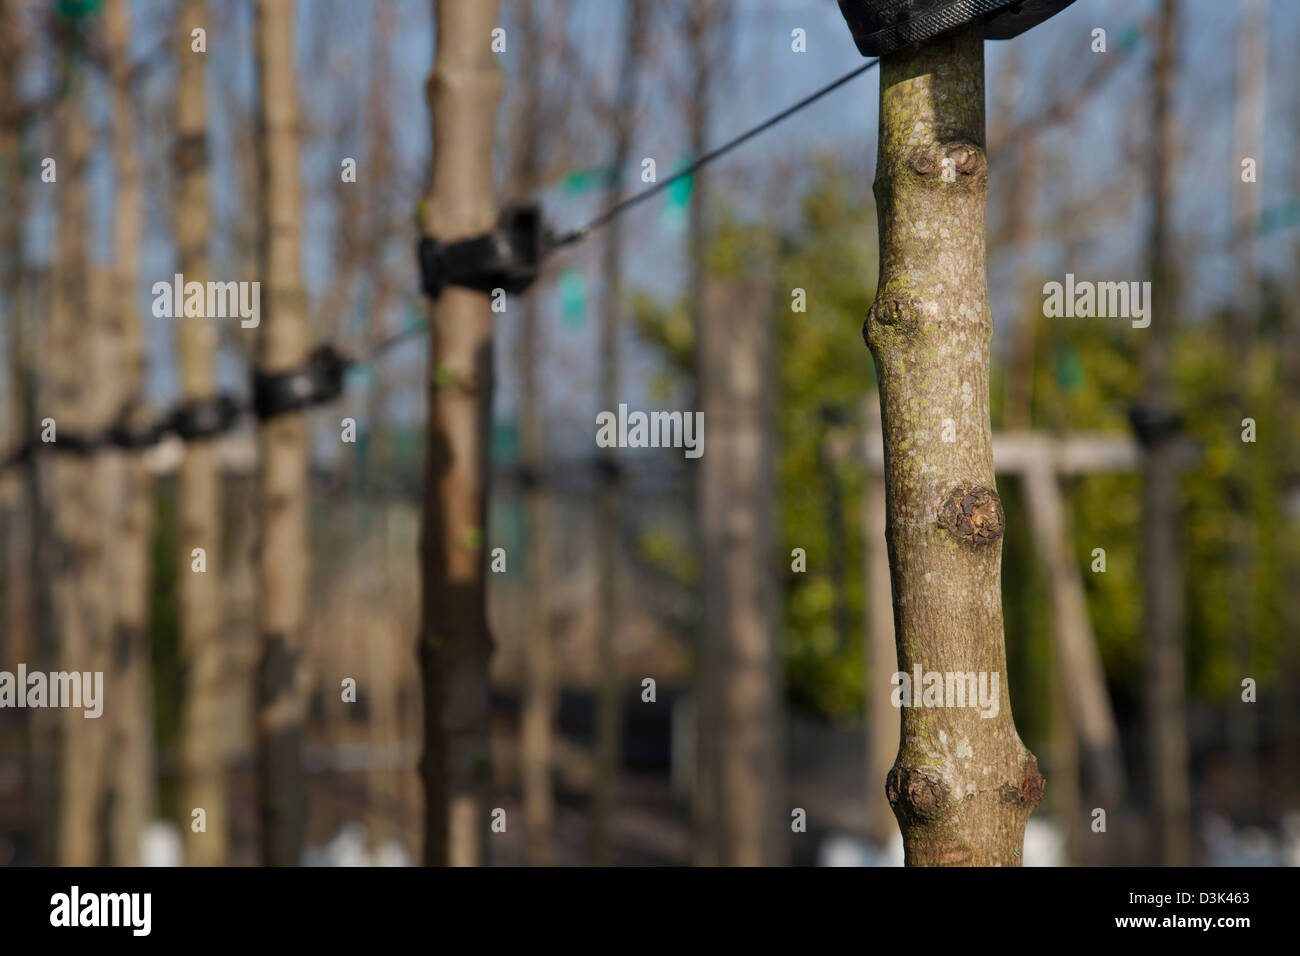 Acer platanoides Olmsted, or Norway Maple for sale at J Jones Nursery in Southport, Merseyside, UK - Stock Image